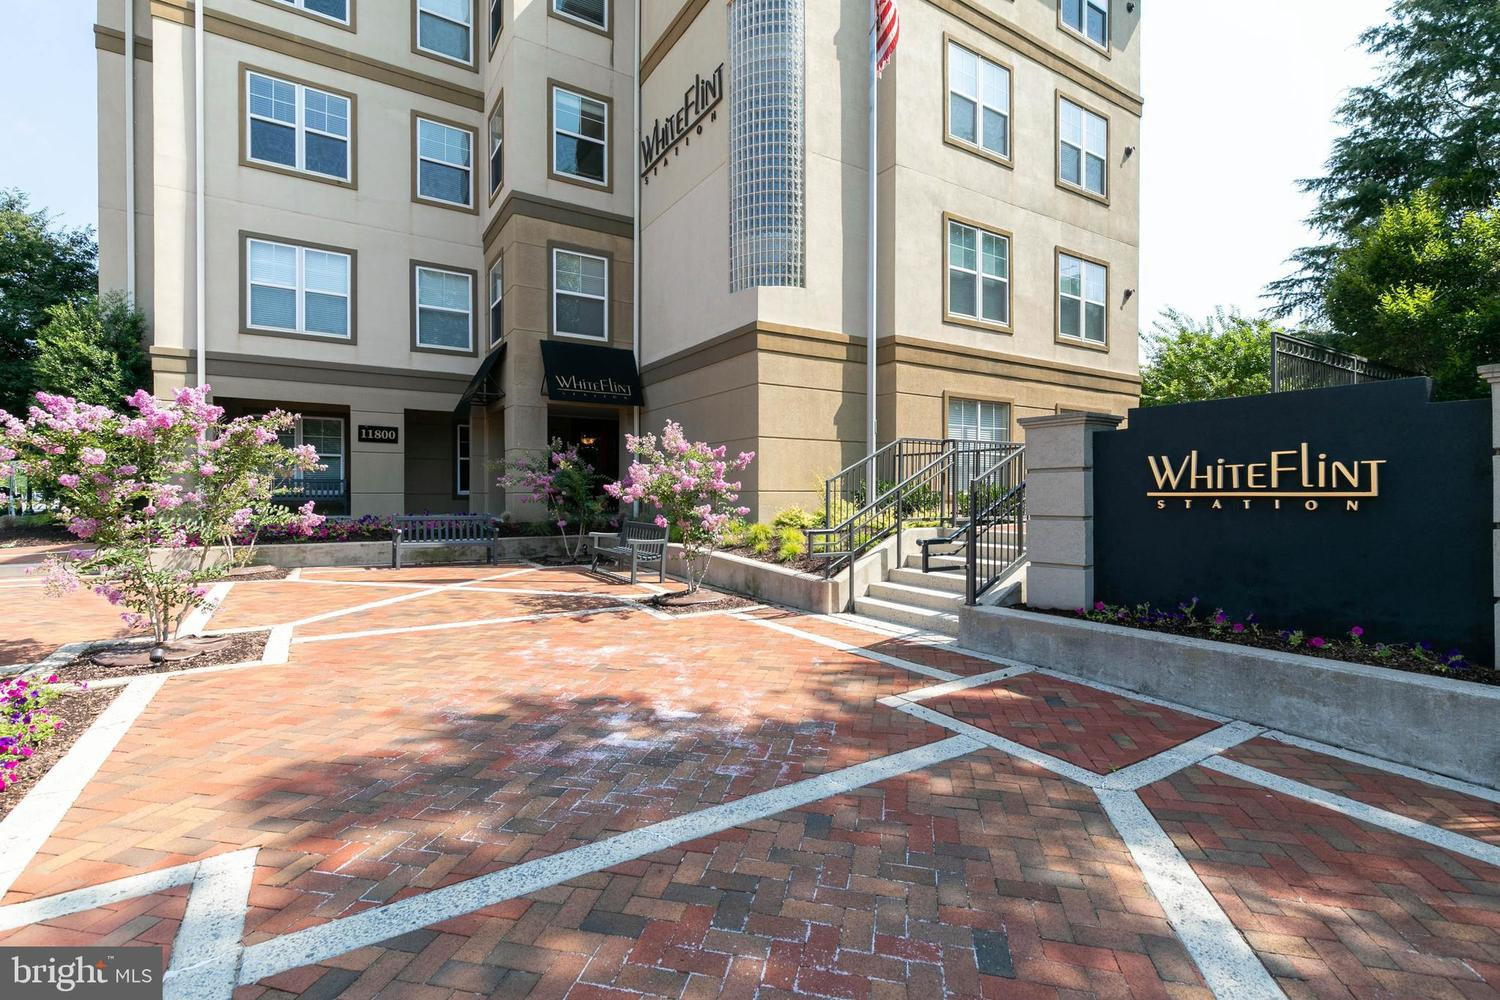 11800 Old Georgetown Road, Unit 1208 Rockville, MD 20852